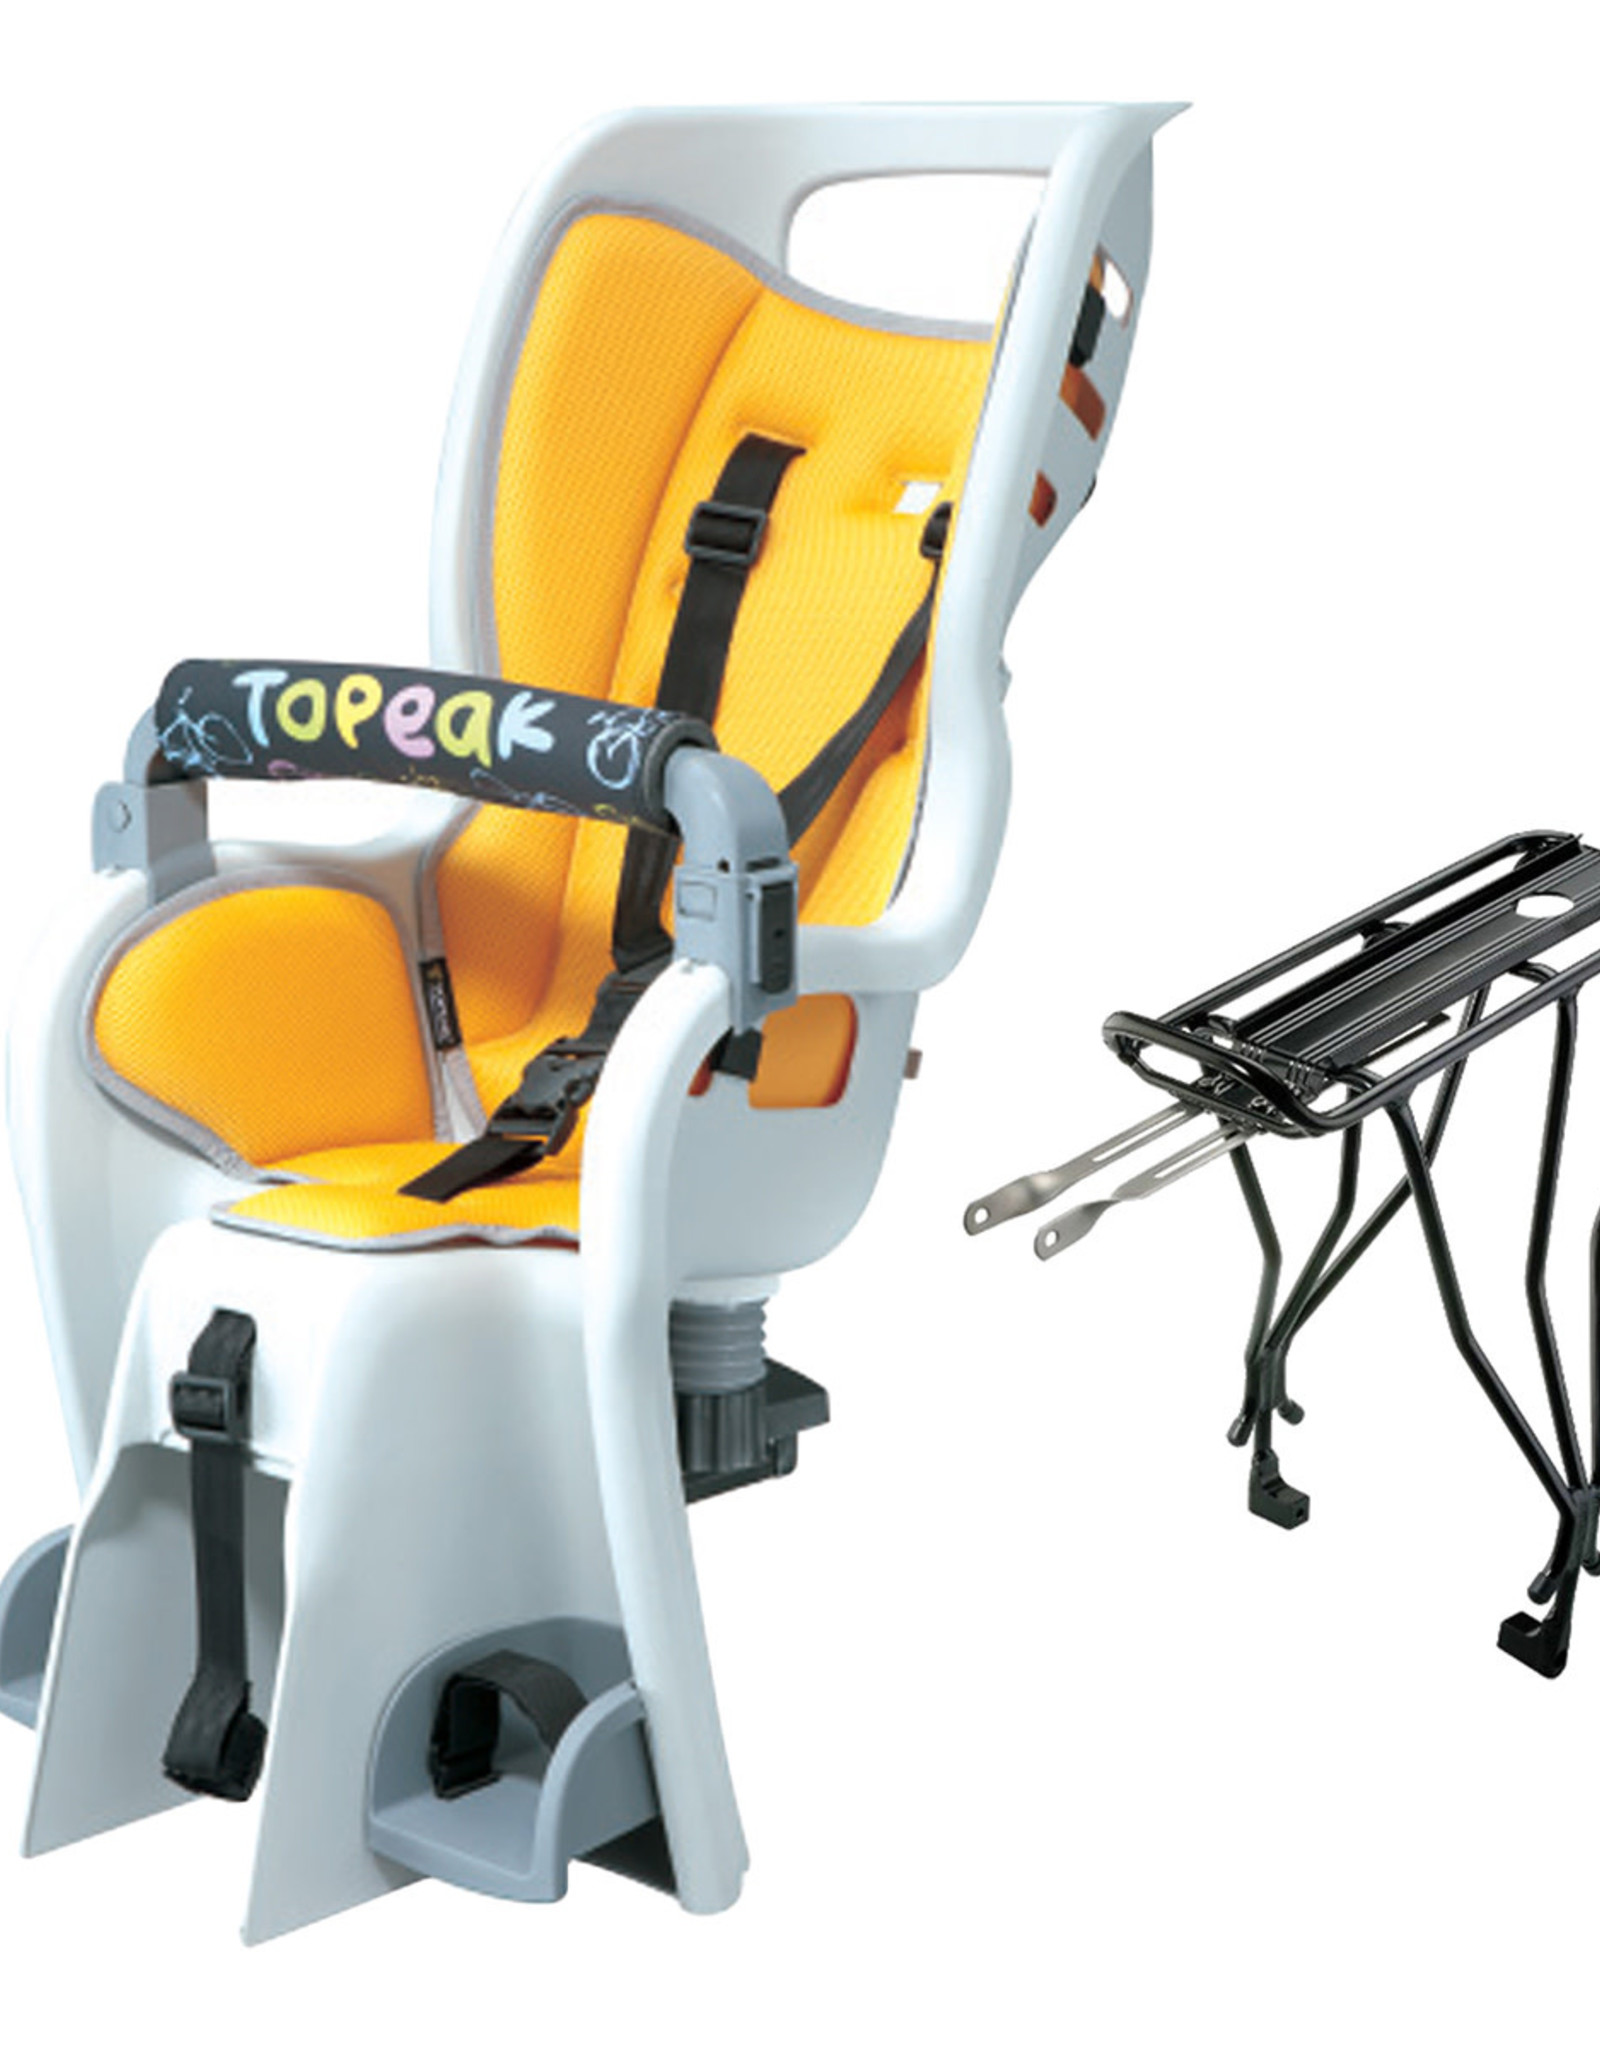 Topeak TOPEAK BABYSEAT II + Rack (Disc Brake Compatible)